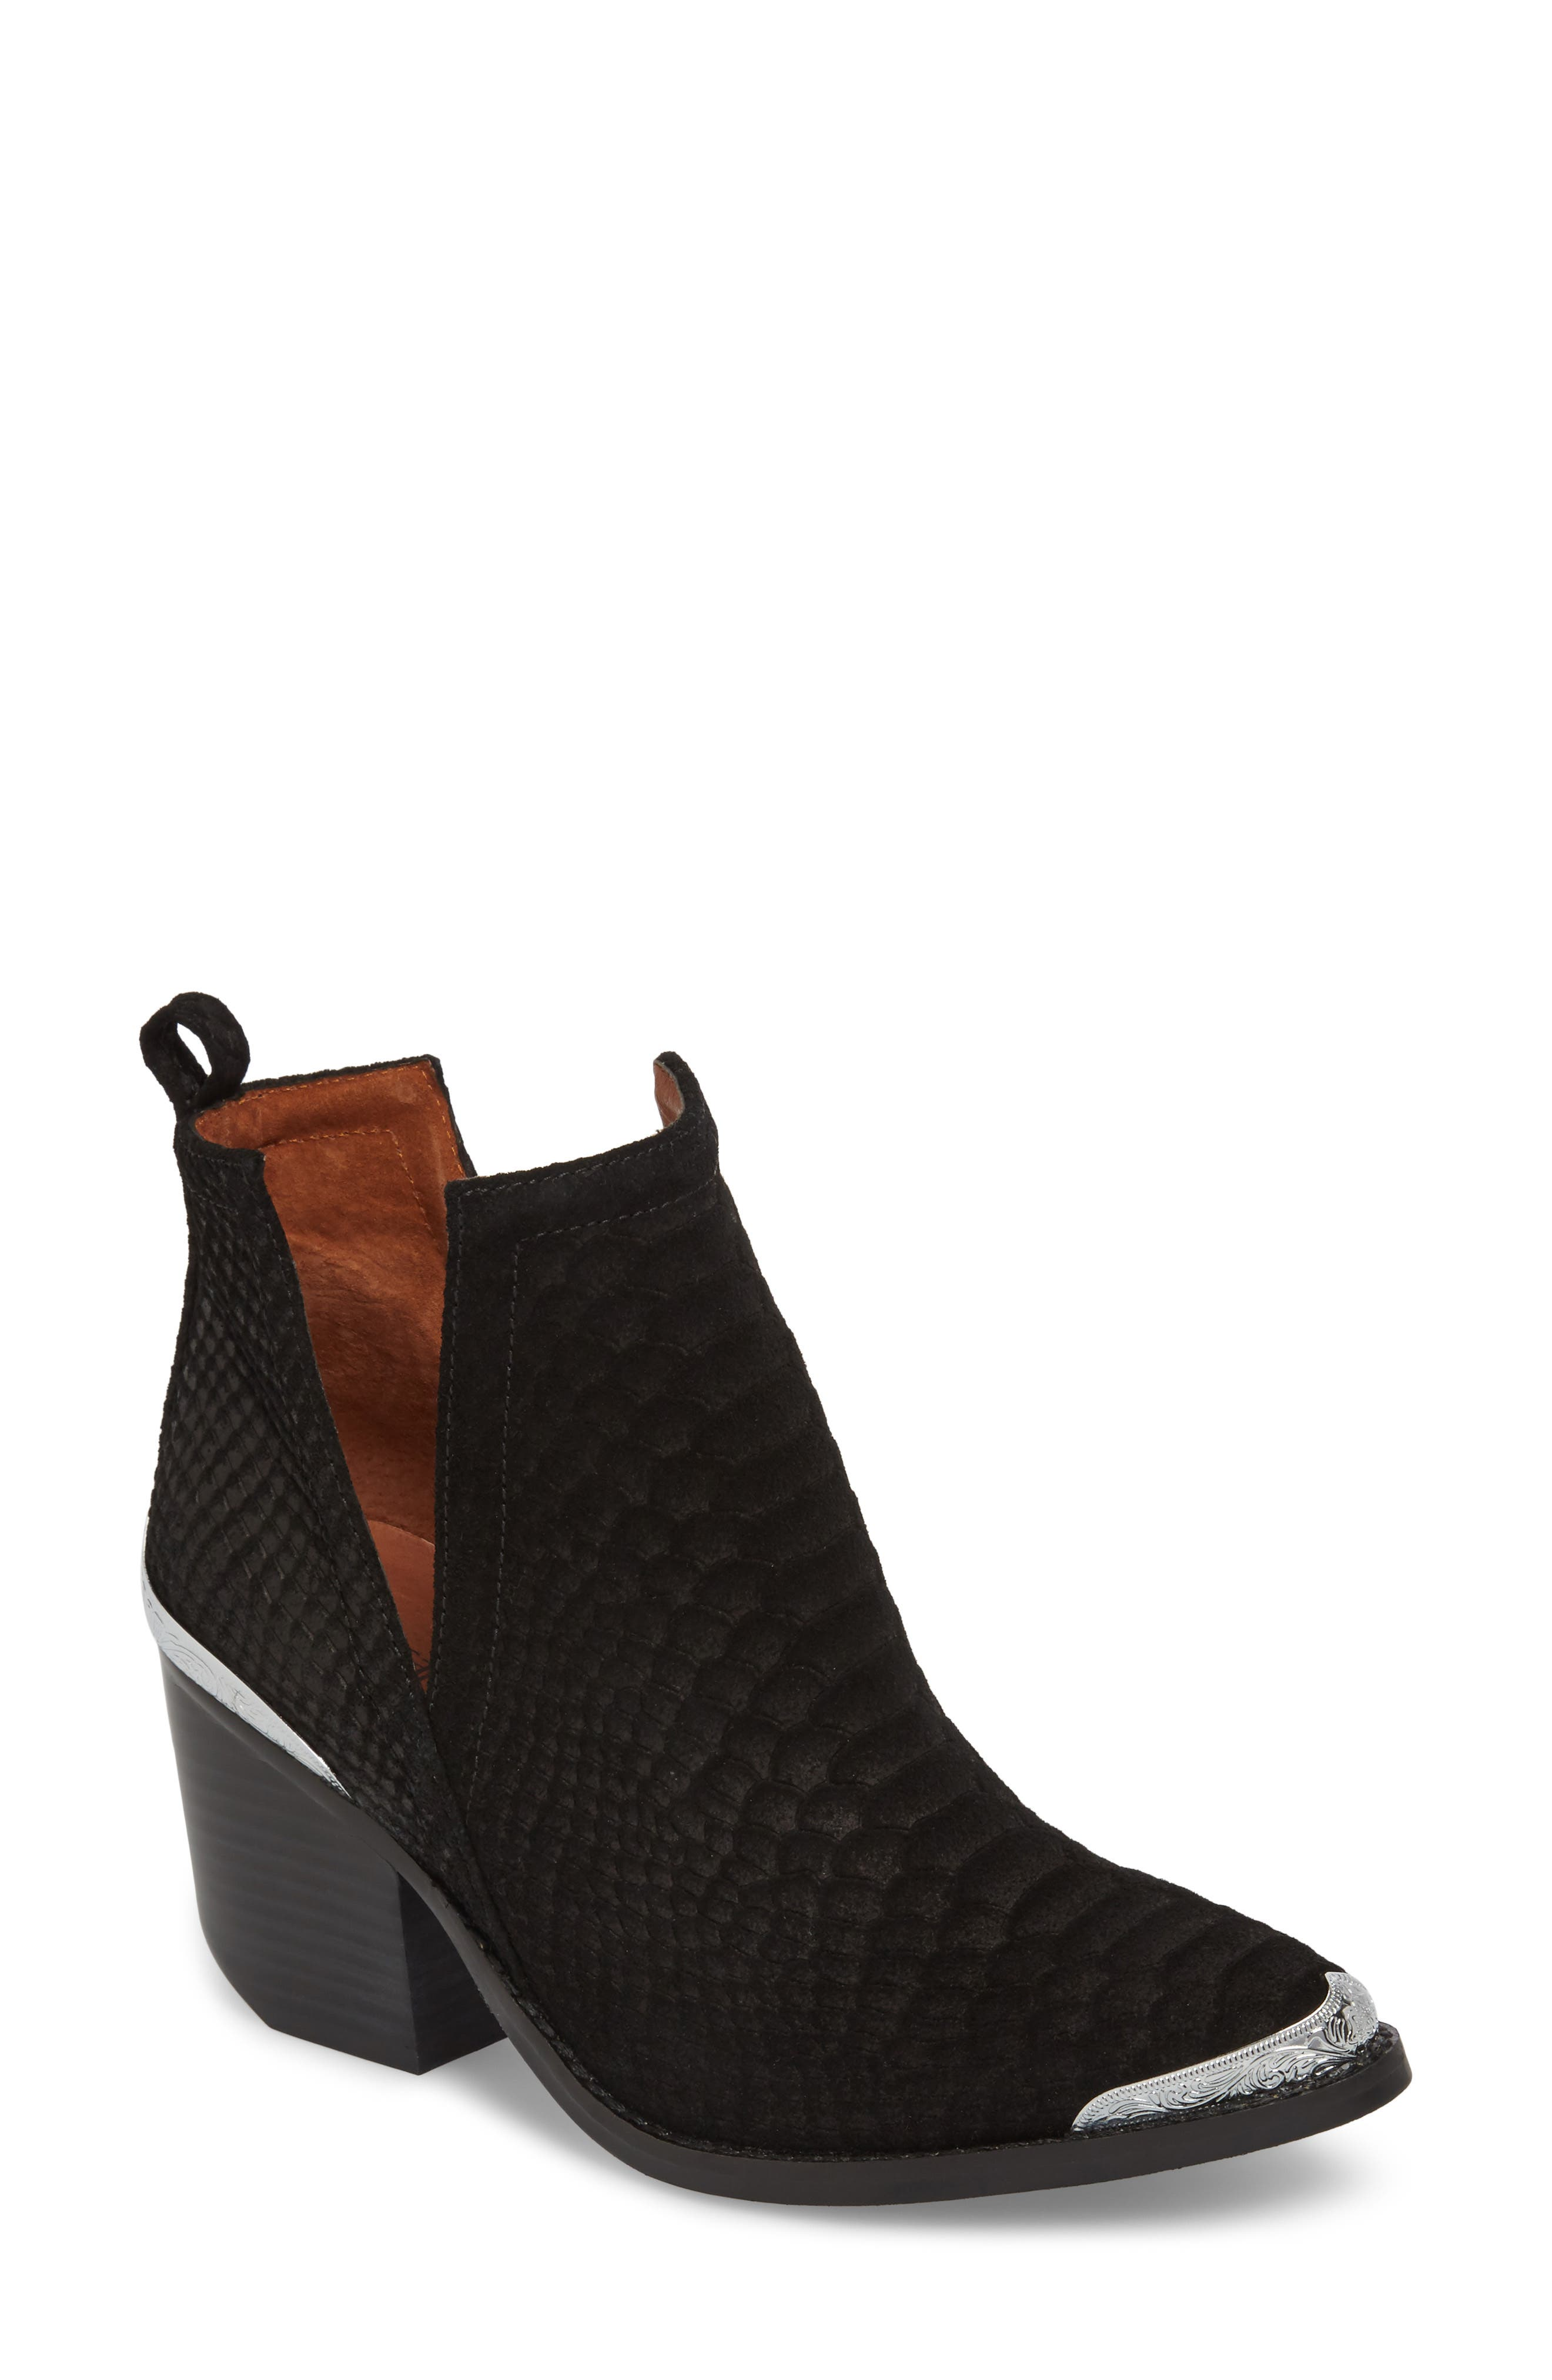 Cromwell Cutout Western Boot,                             Main thumbnail 1, color,                             Black Suede/ Snake